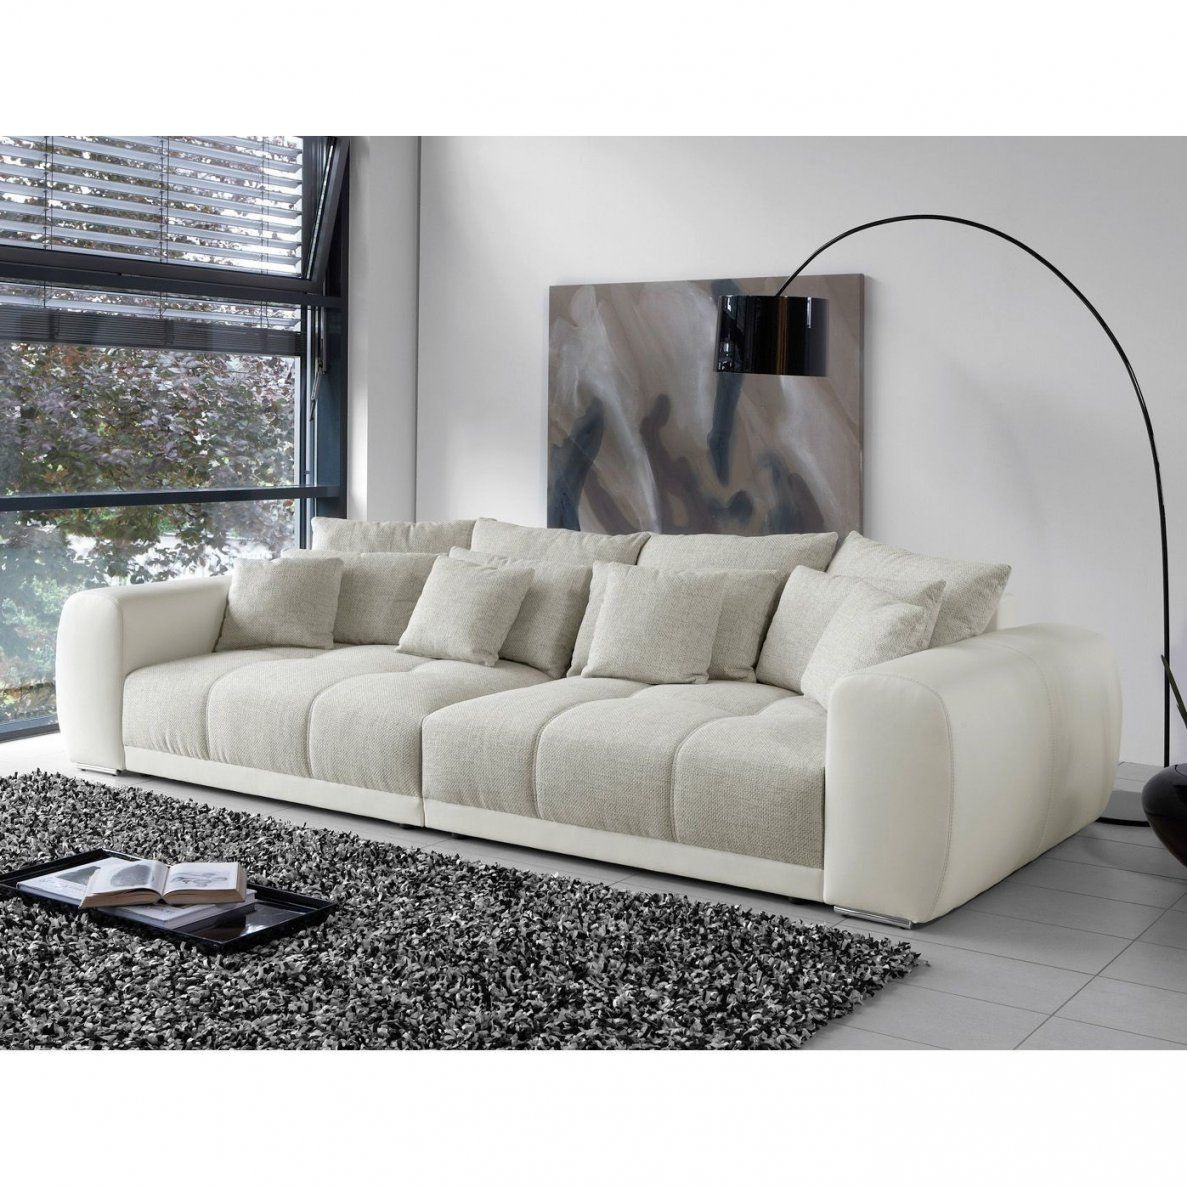 Luxury Otto Big Sofa Inspirierend Xxl Big Sofa Cheap Big Sofas Xxl von Otto Big Sofa Xxl Photo